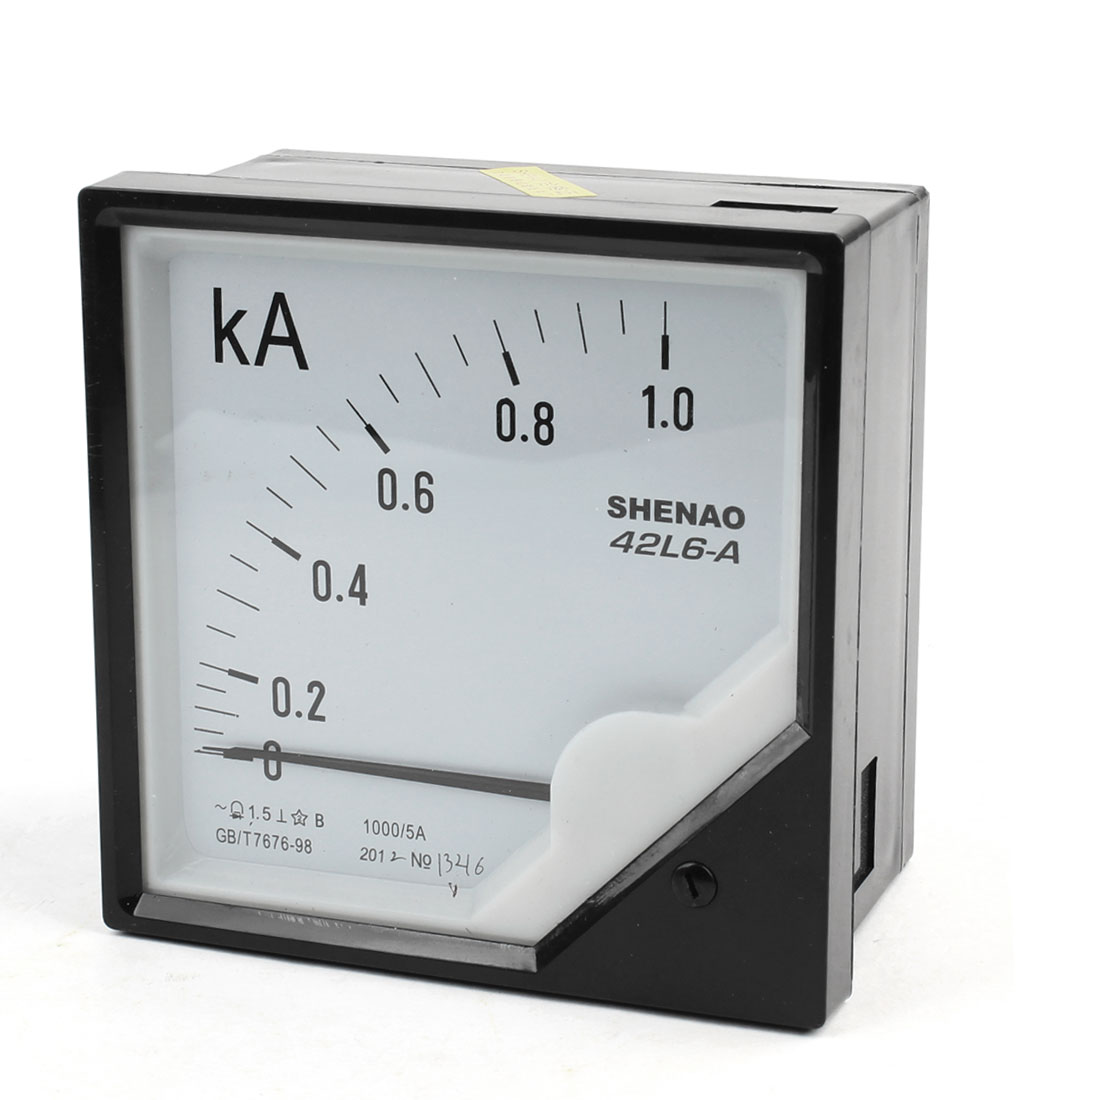 Analogue Needle AC 0-1.0kA Class 2.5 Accuracy Ampere Panel Meter